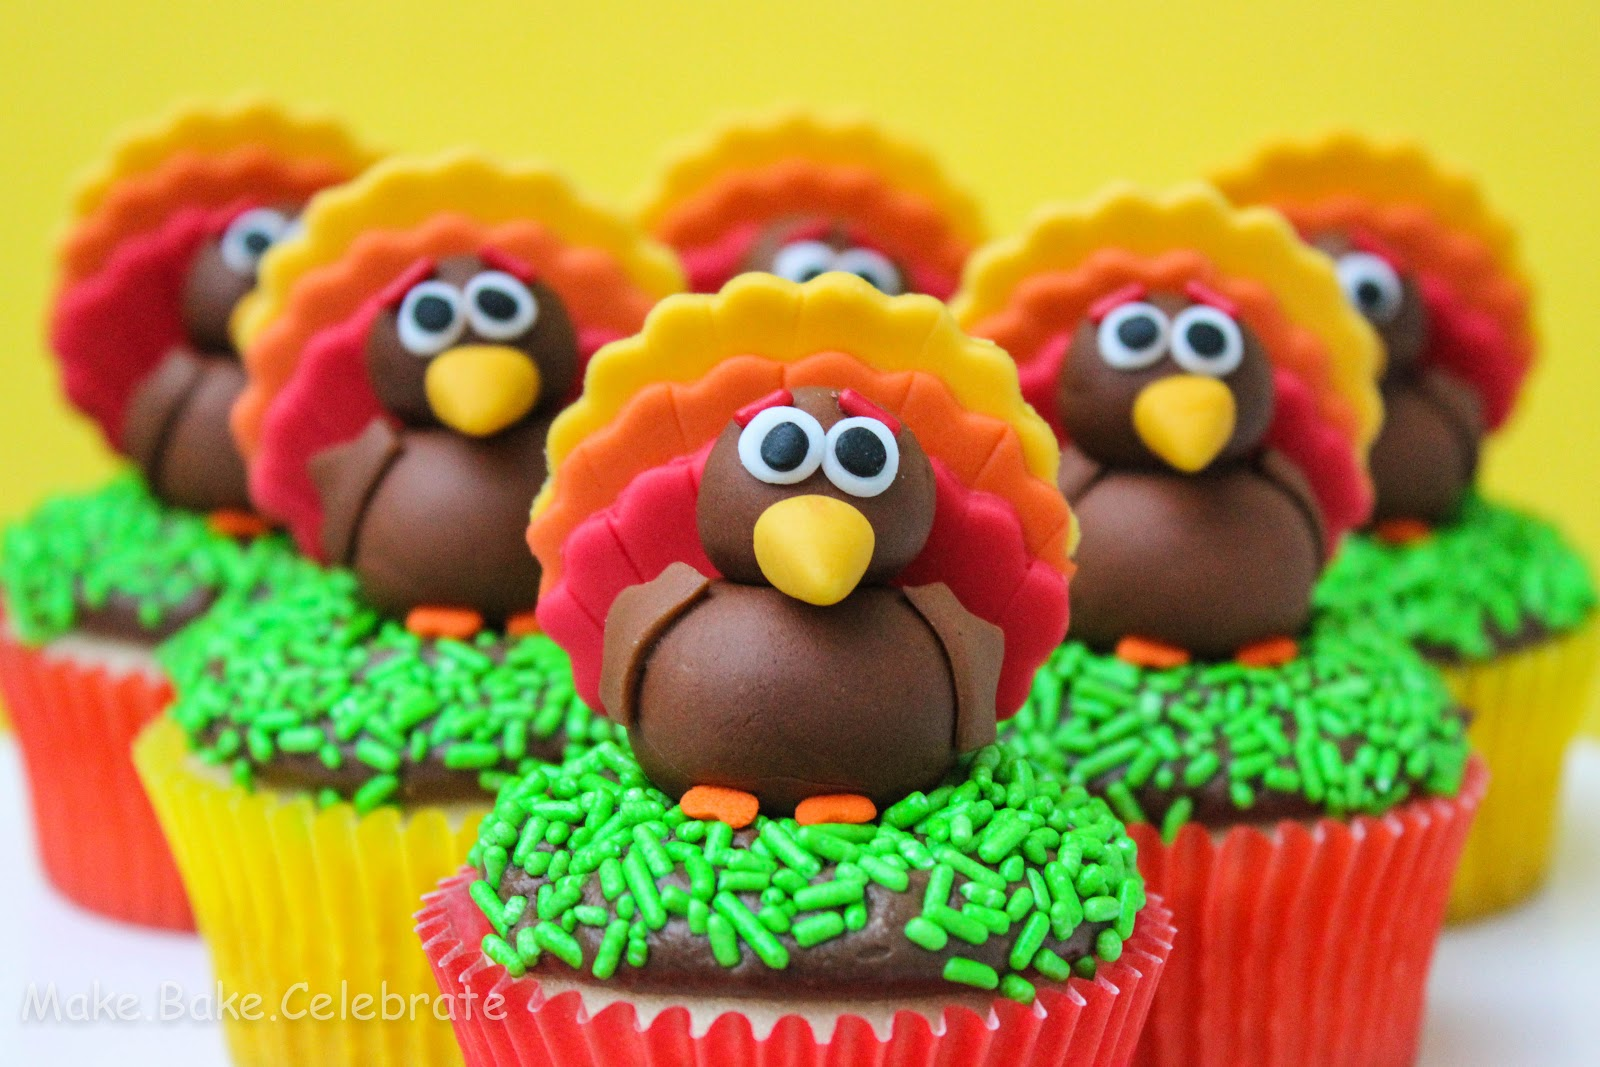 Cute Cake Ideas For Thanksgiving : Cute Thanksgiving Turkey Cake Ideas and Designs